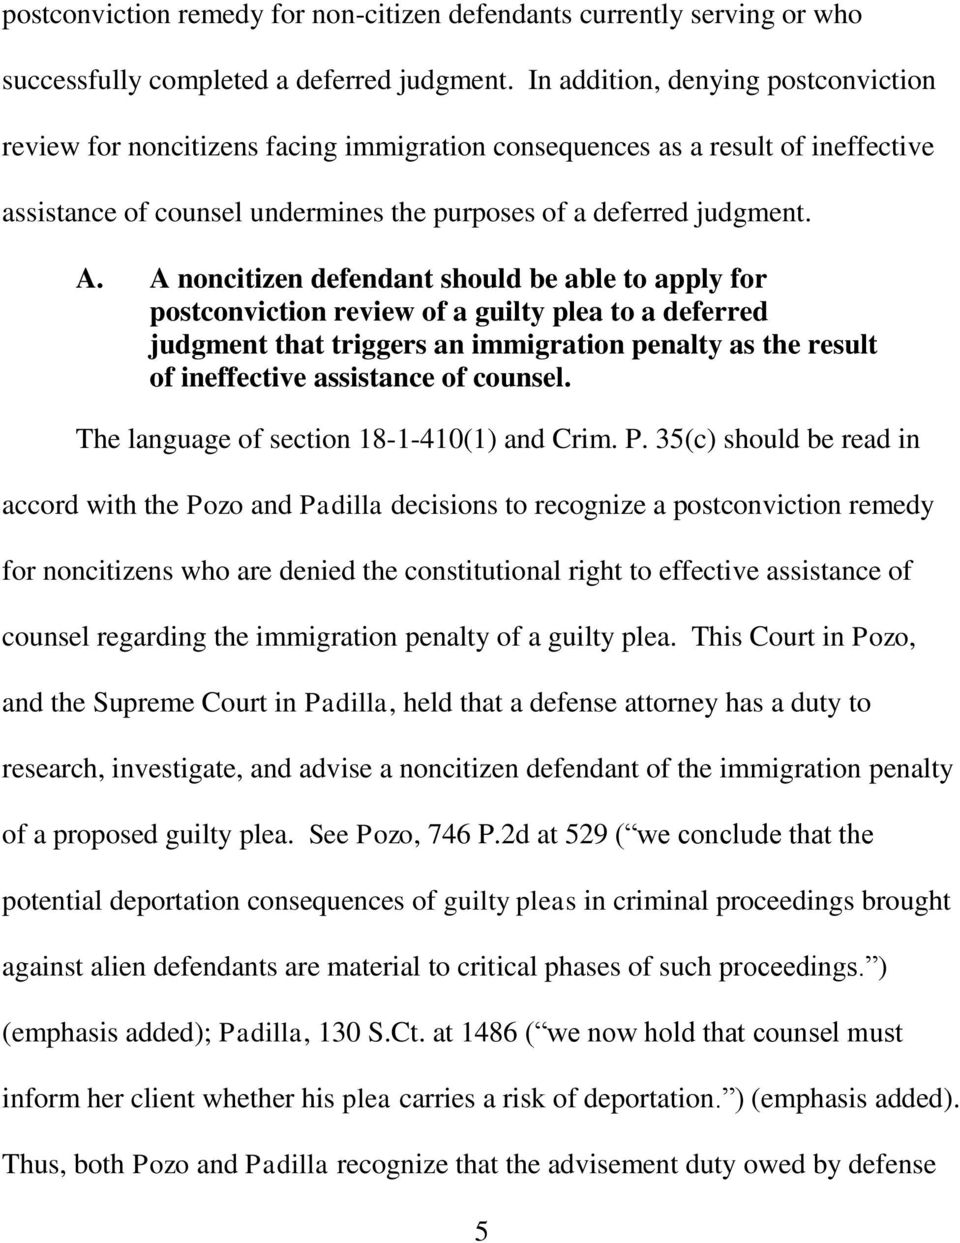 A noncitizen defendant should be able to apply for postconviction review of a guilty plea to a deferred judgment that triggers an immigration penalty as the result of ineffective assistance of